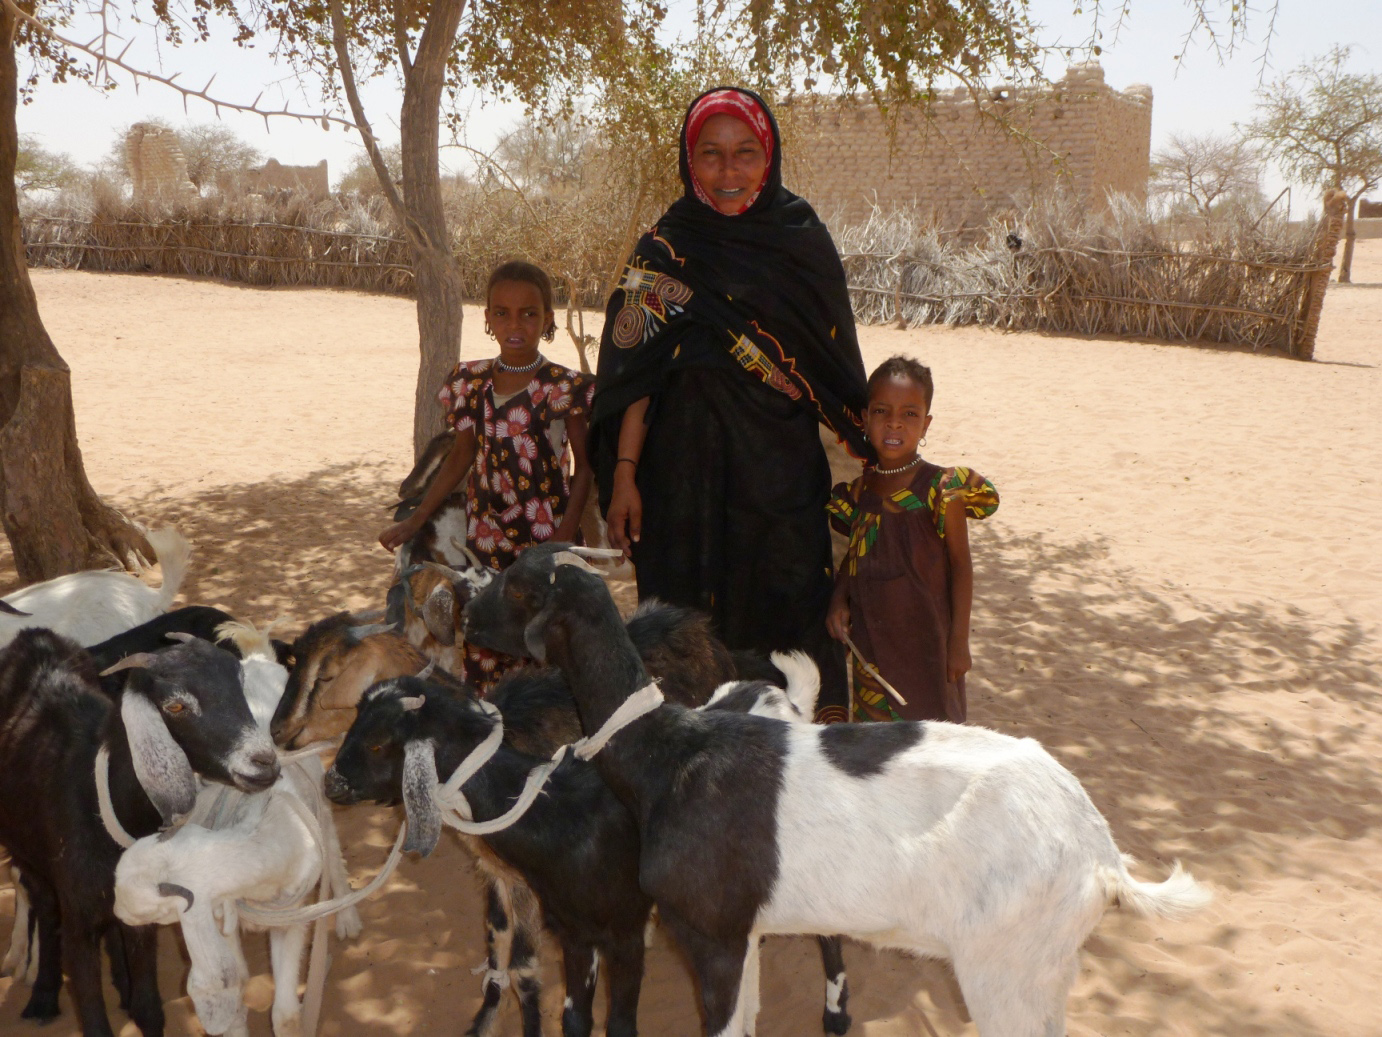 Women in Eri Toukoul village near Mao in Kanem Region, western Chad have received goats to help them get through the food crisis that they are currently experiencing. Recurring drought has killed off most of the animals in the village over recent years